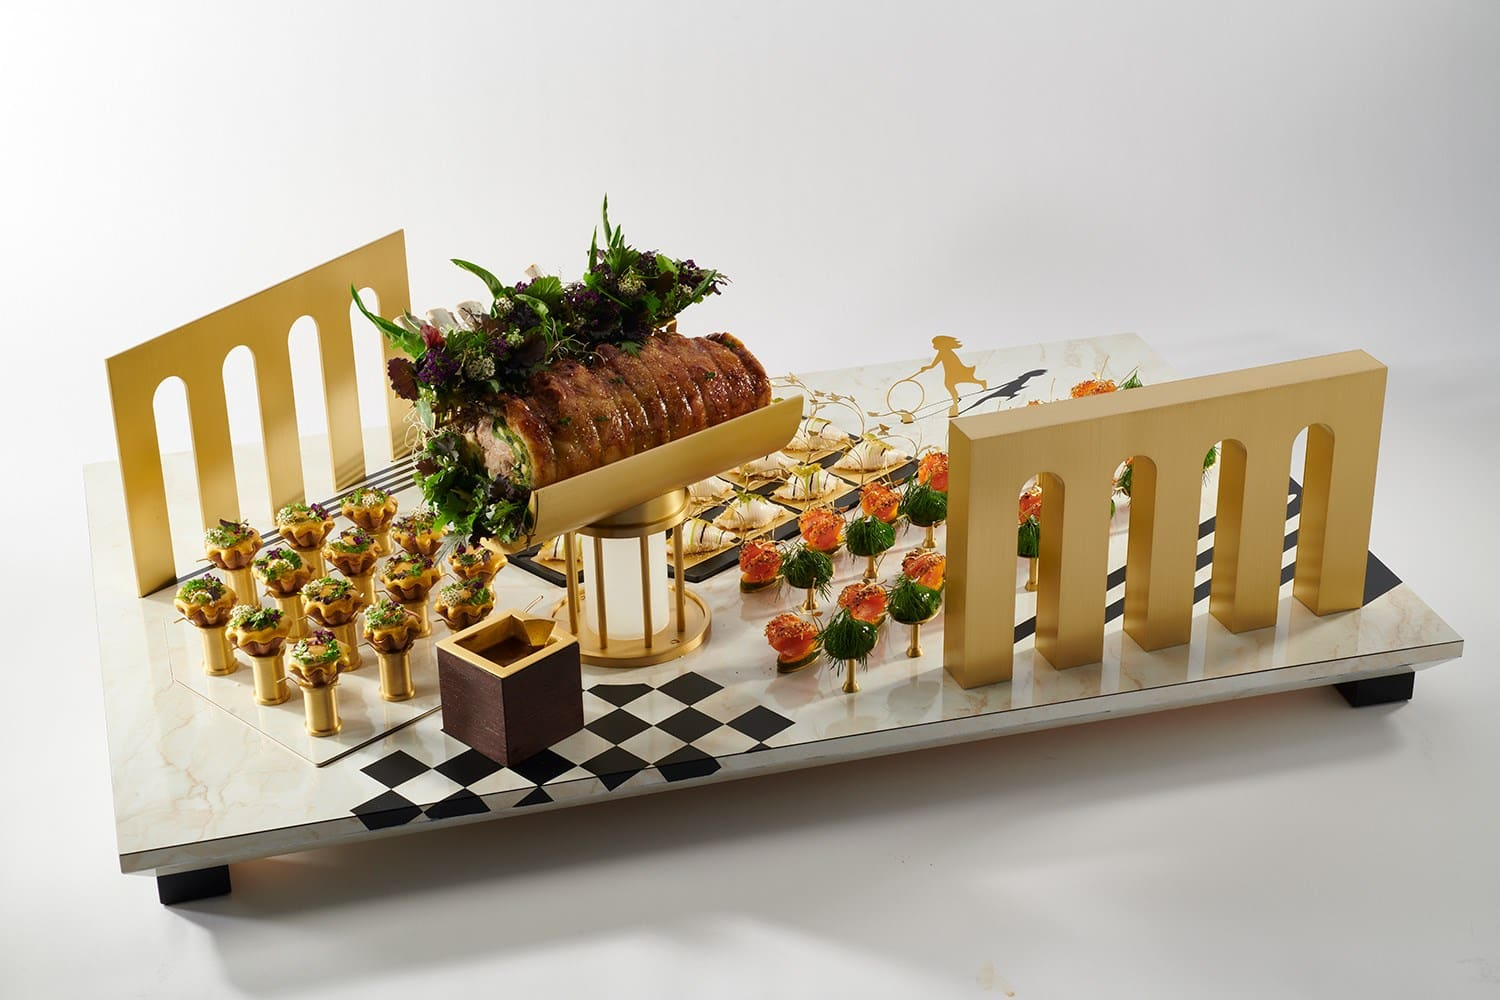 original_Bocuse-d-or-Italy-platter.jpg